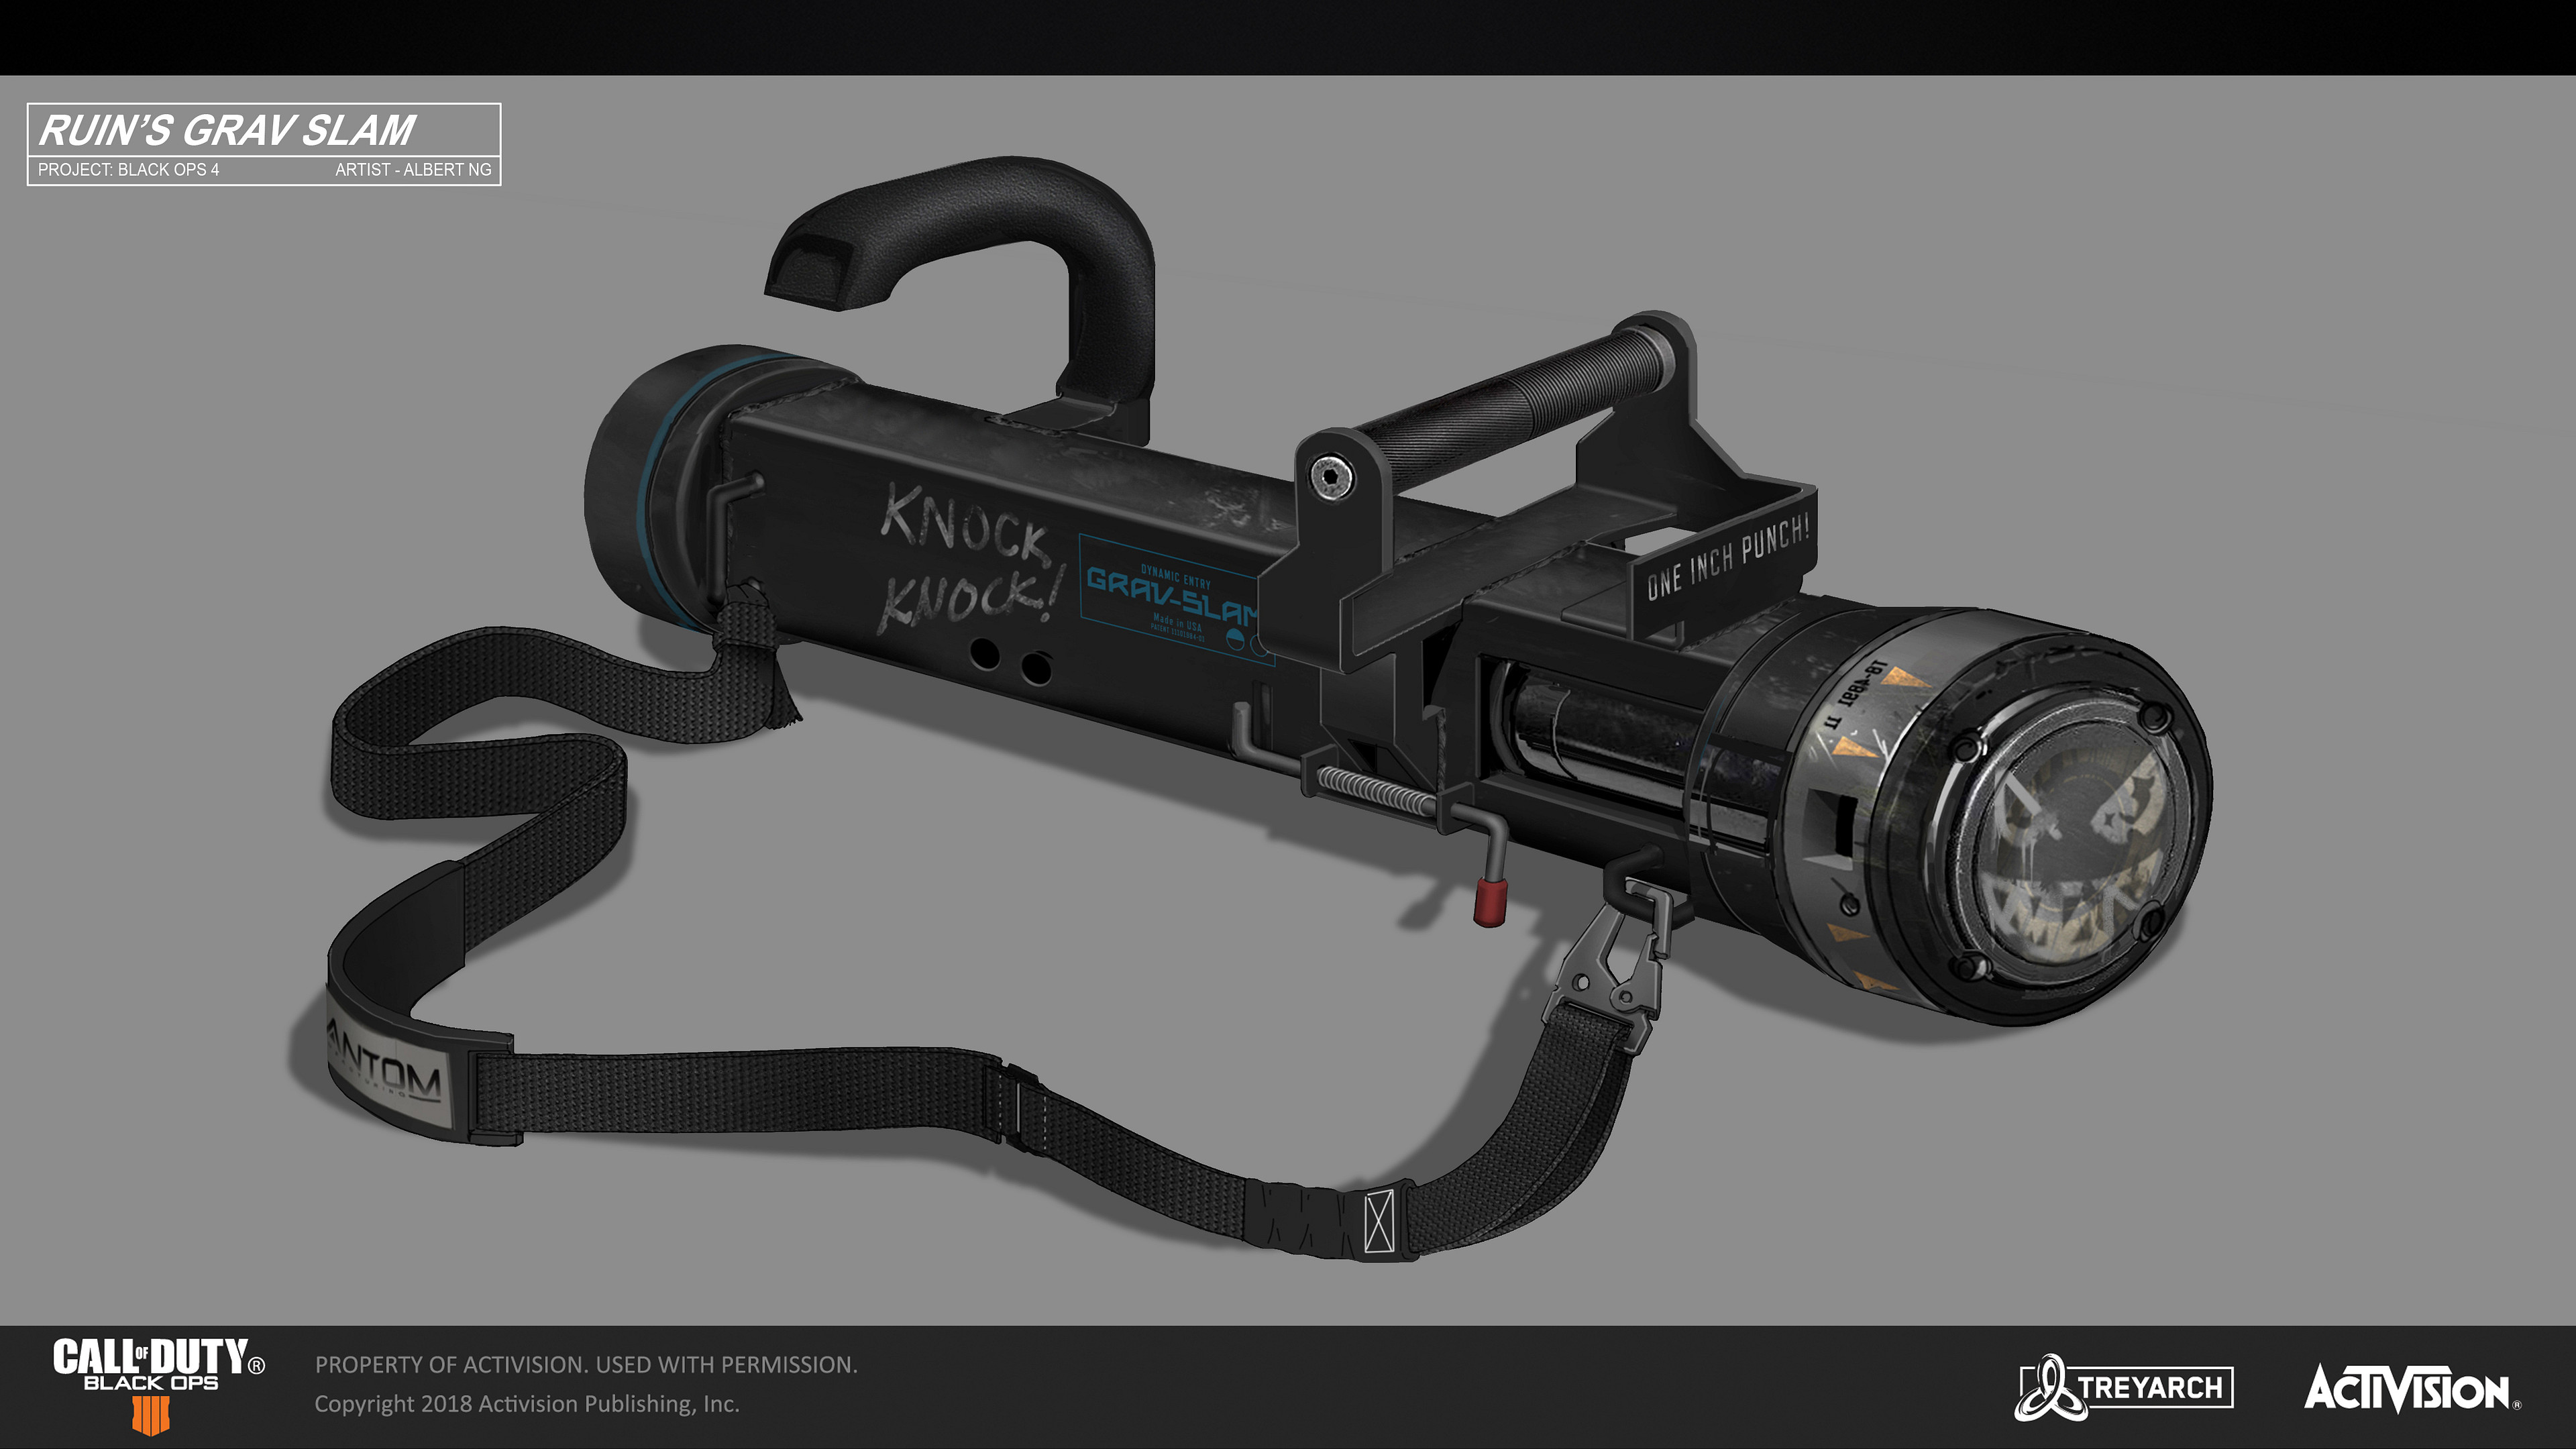 Call of Duty - Black Ops 4 - Specialist Weapon - Ruin's Gravity Slam Concept.  Concept Art - Albert Ng